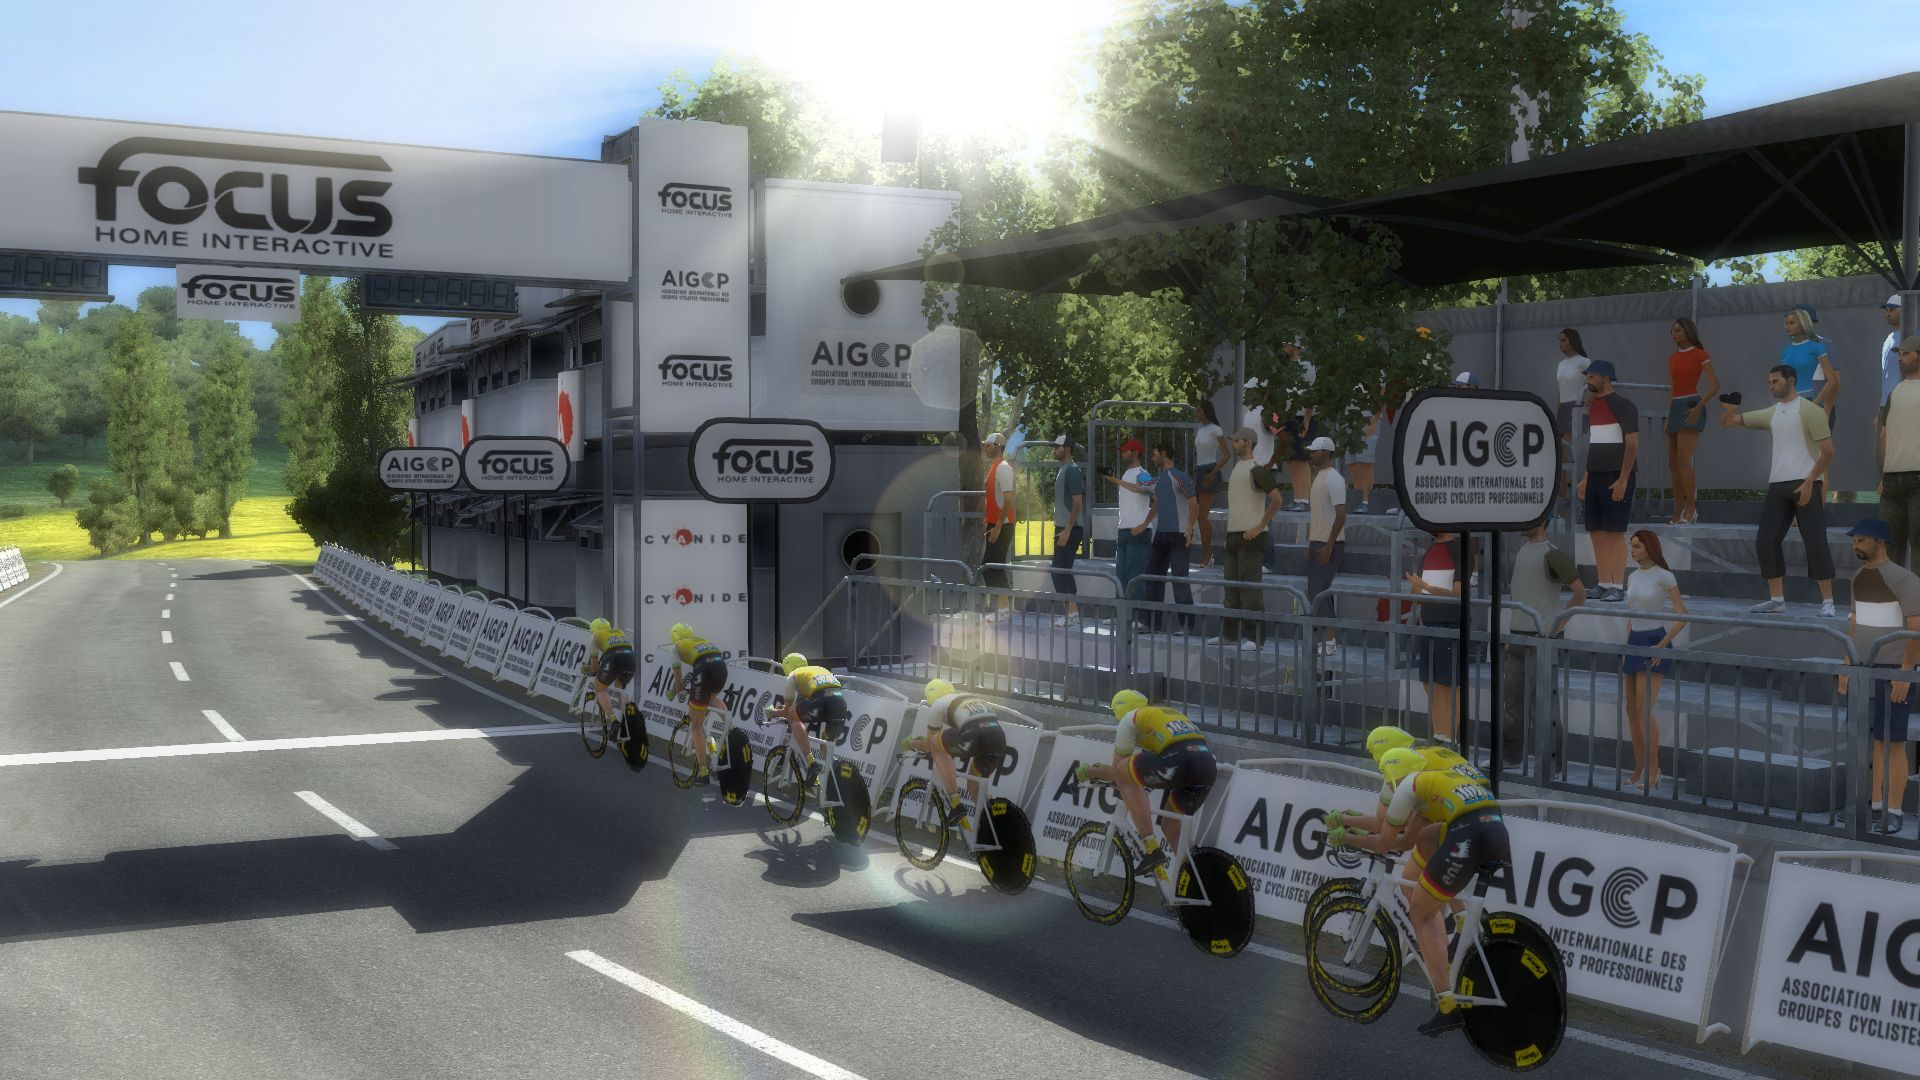 pcmdaily.com/images/mg/2019/Races/HC/Slovenie/mg19_slo_s01_32.jpg